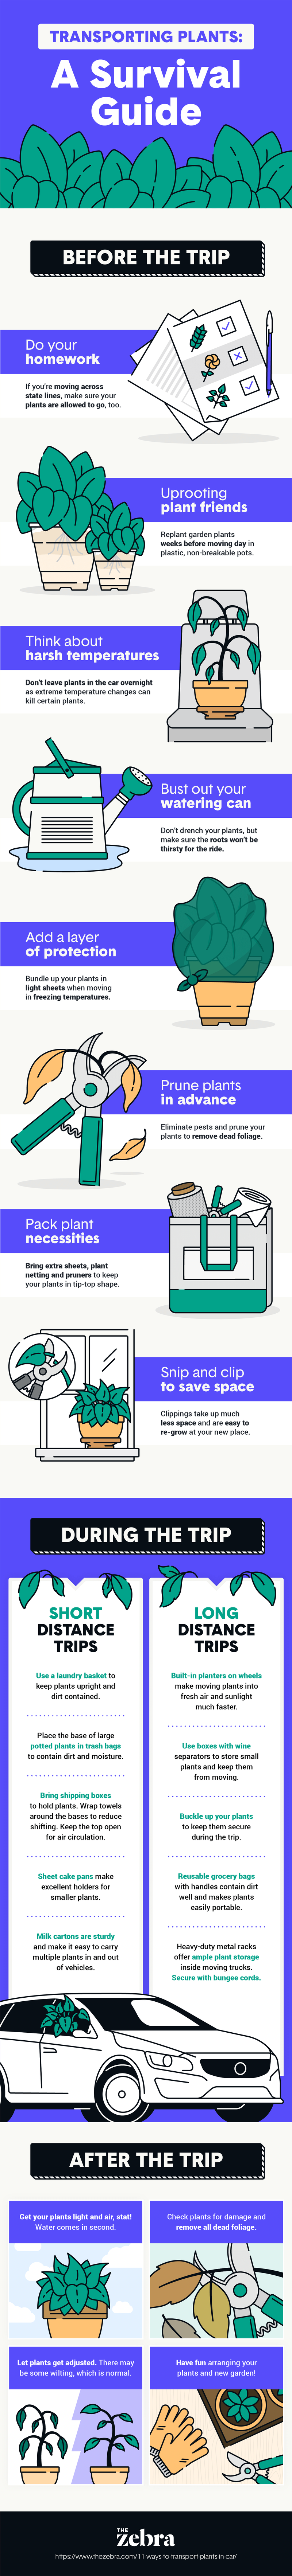 how to transport plants in a car infographic